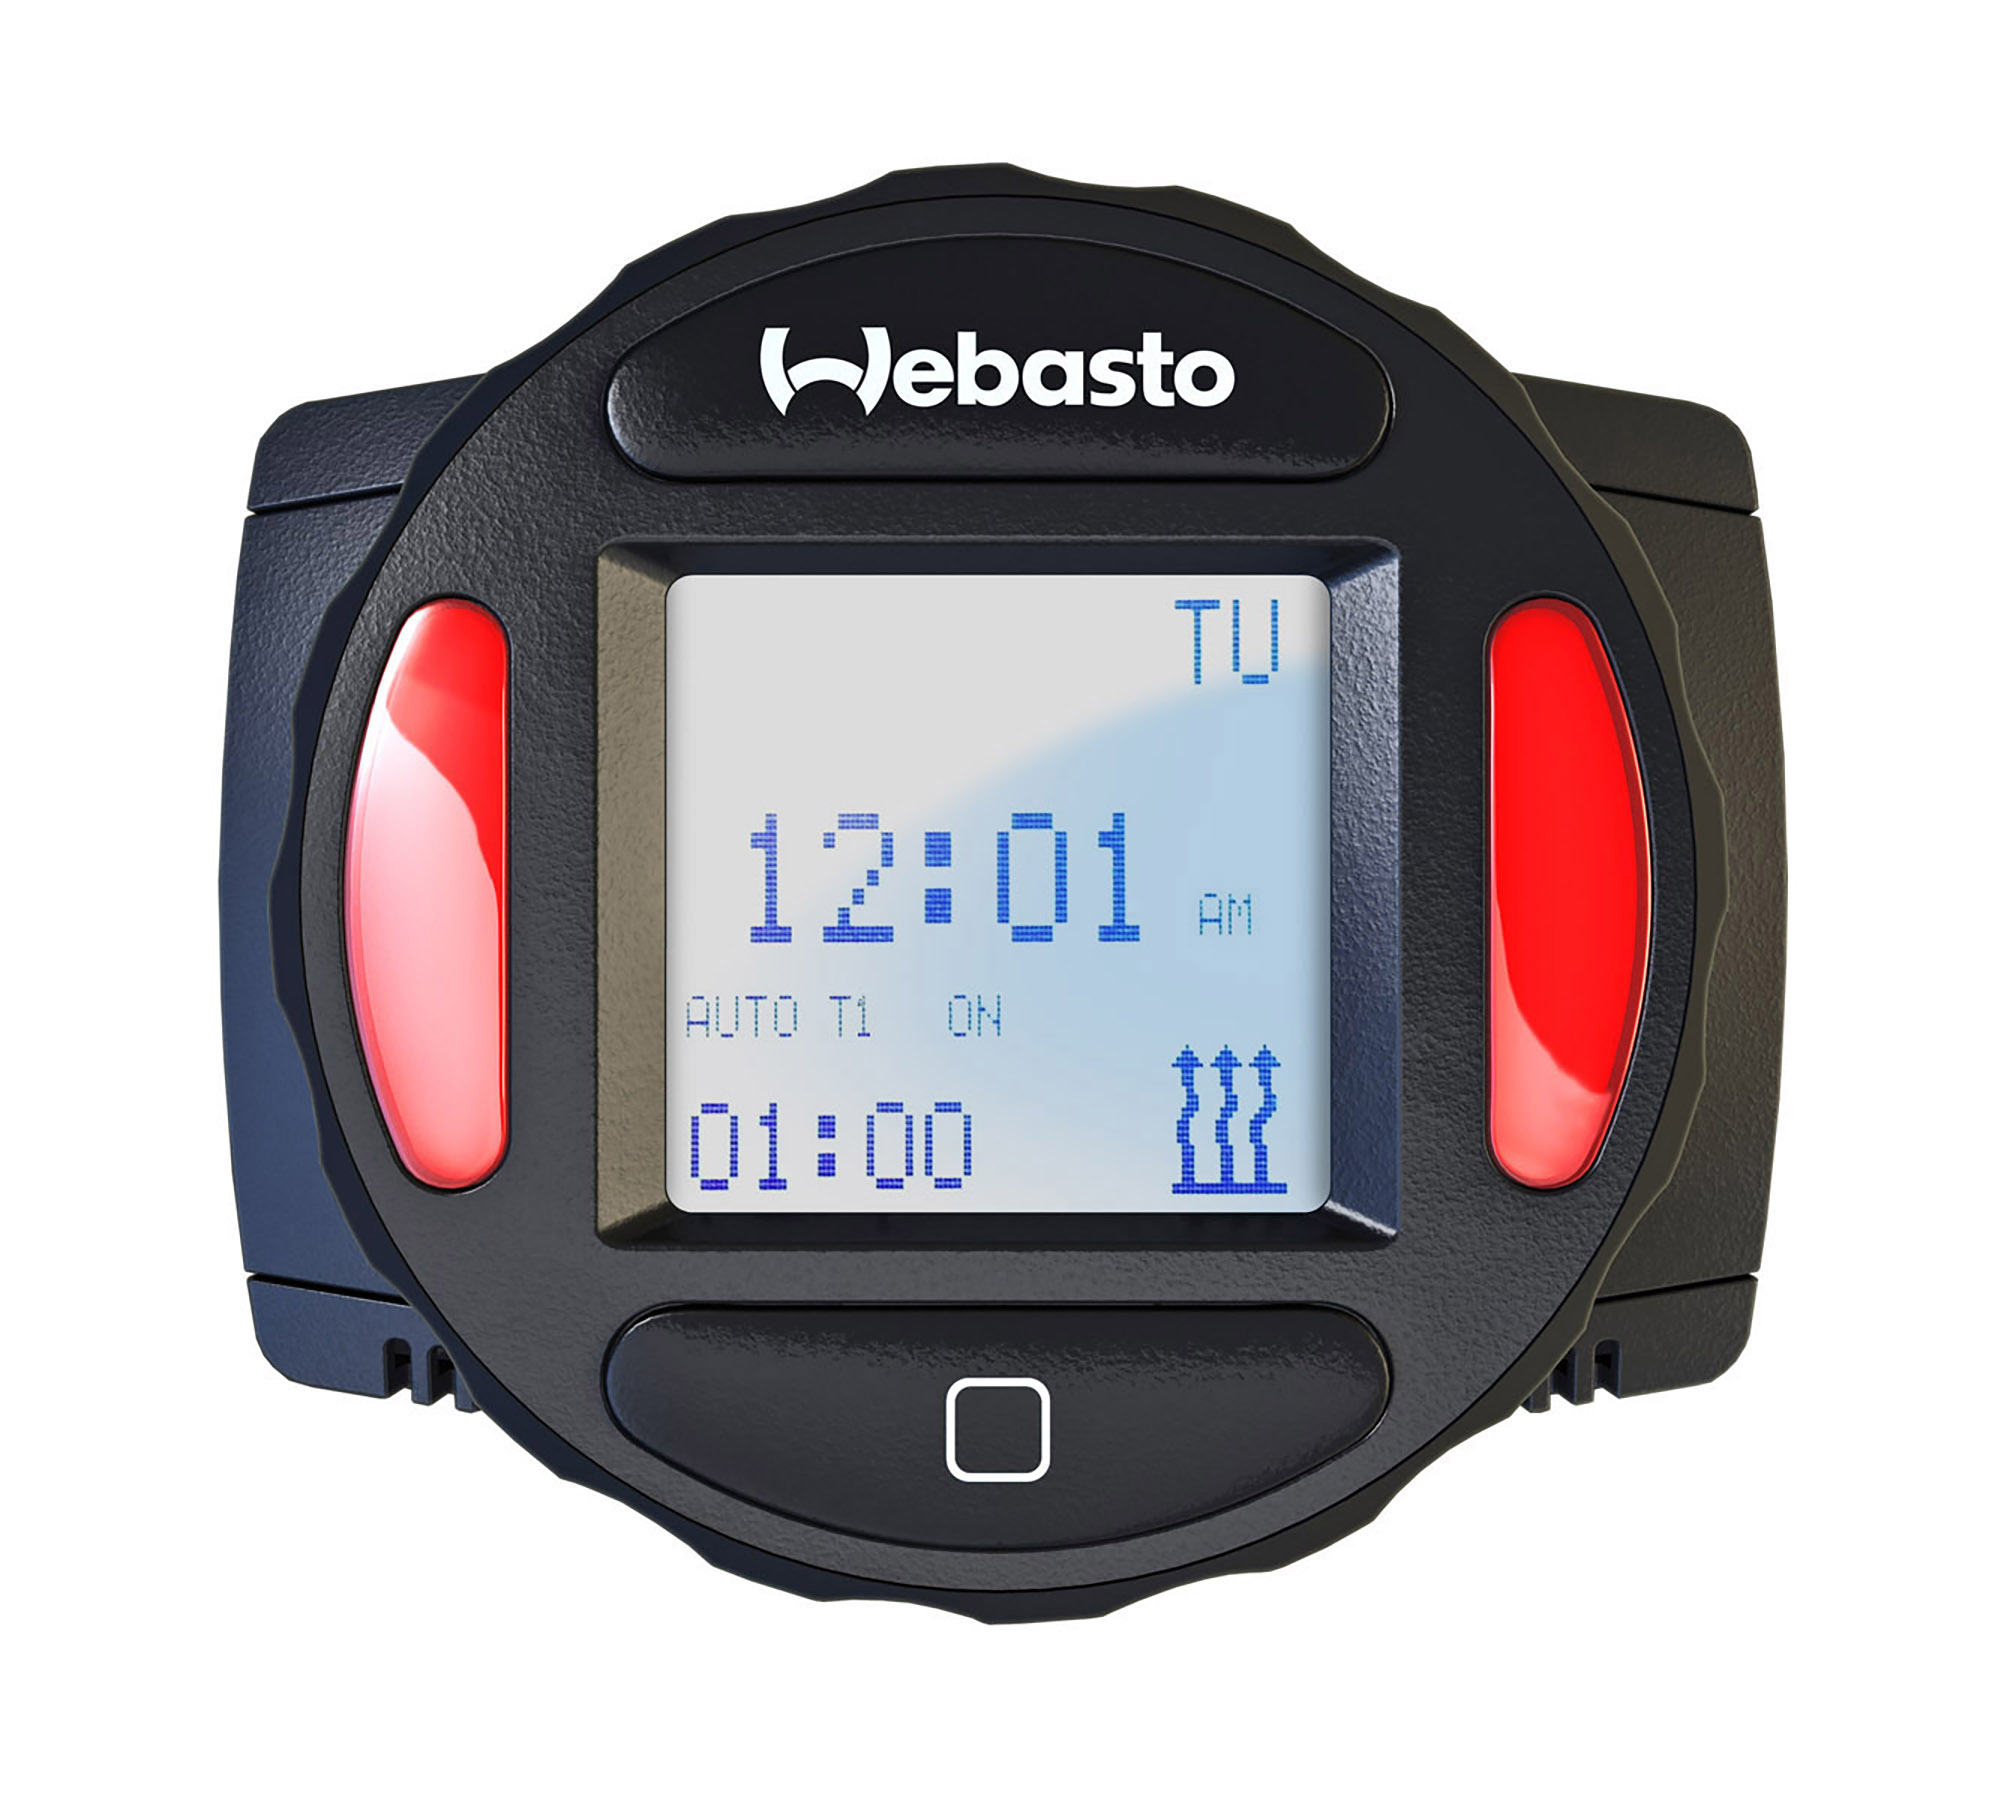 The Thermo Top Evo can be controlled manually or programmed to turn on in advance, via Webasto's SmarTemp Control fx 2.0, so the engine is pre-warmed when the driver arrives.